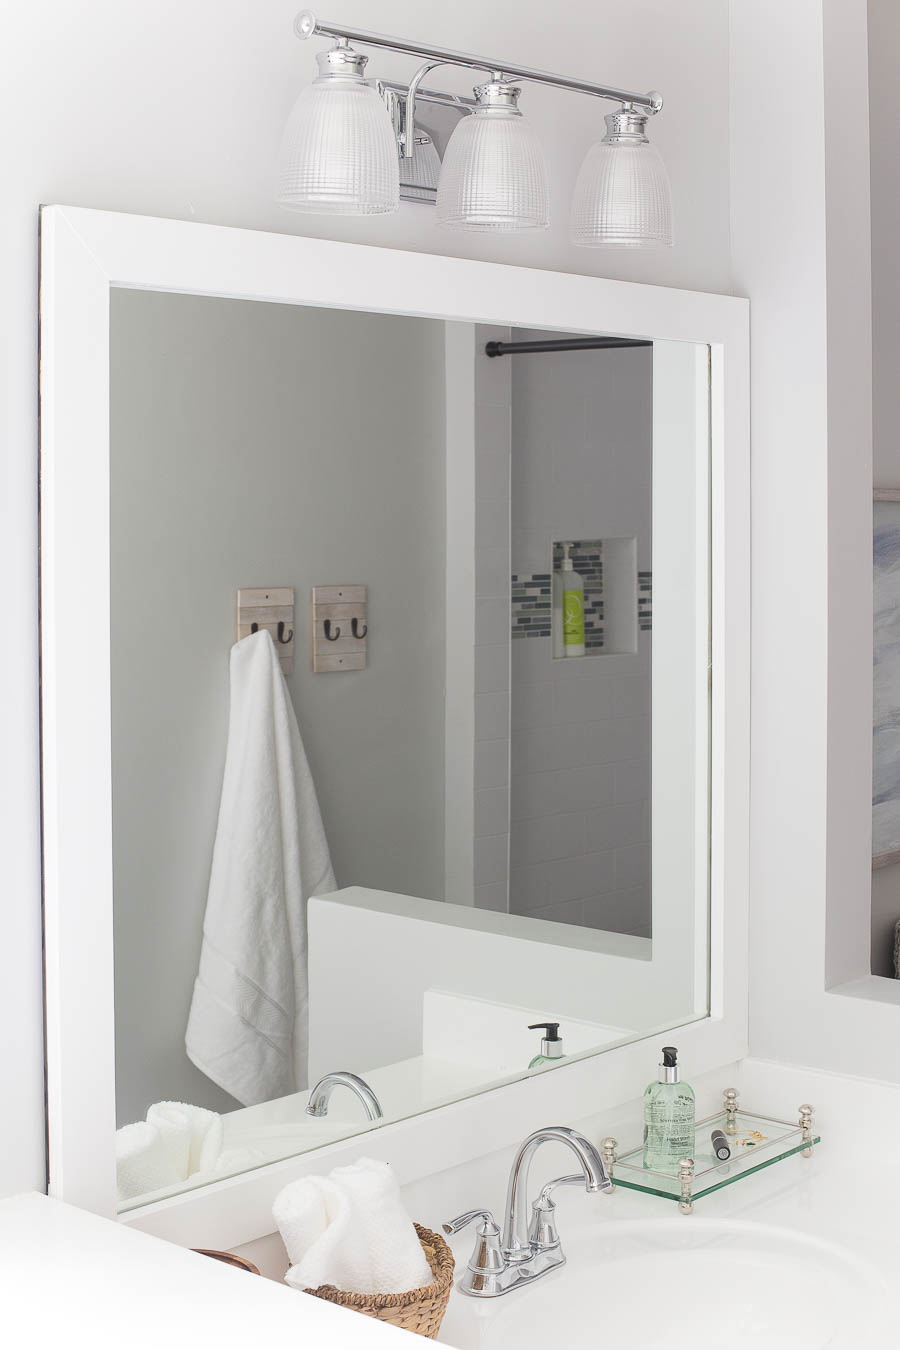 how to frame a bathroom mirror - easy diy project